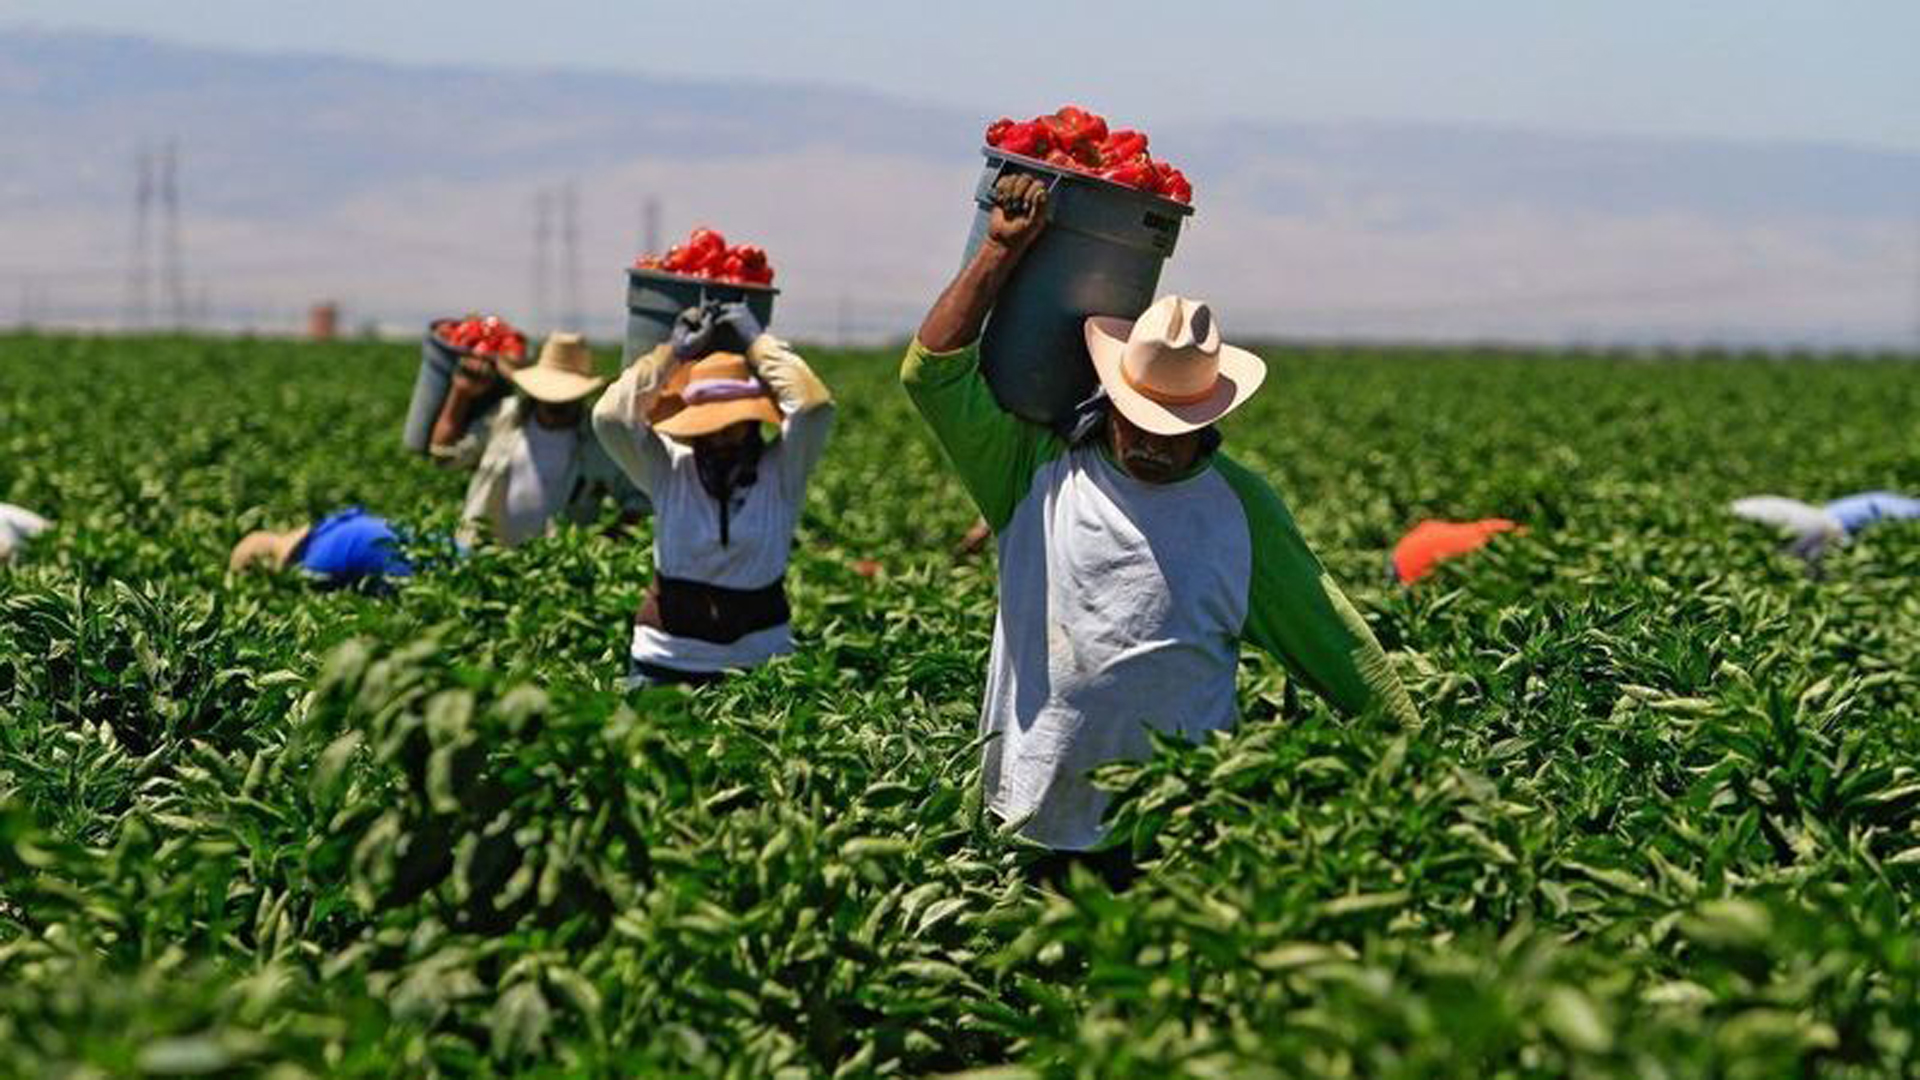 In 2019, agricultural workers gain time-and-a-half pay after 9.5 hours a day or 55 hours a week at farms, ranches and dairies with 26 or more employees. By 2025, all agricultural operations would have to pay overtime after 8 hours and 40 hours a week -- the same as other workers. (Credit: Los Angeles Times)